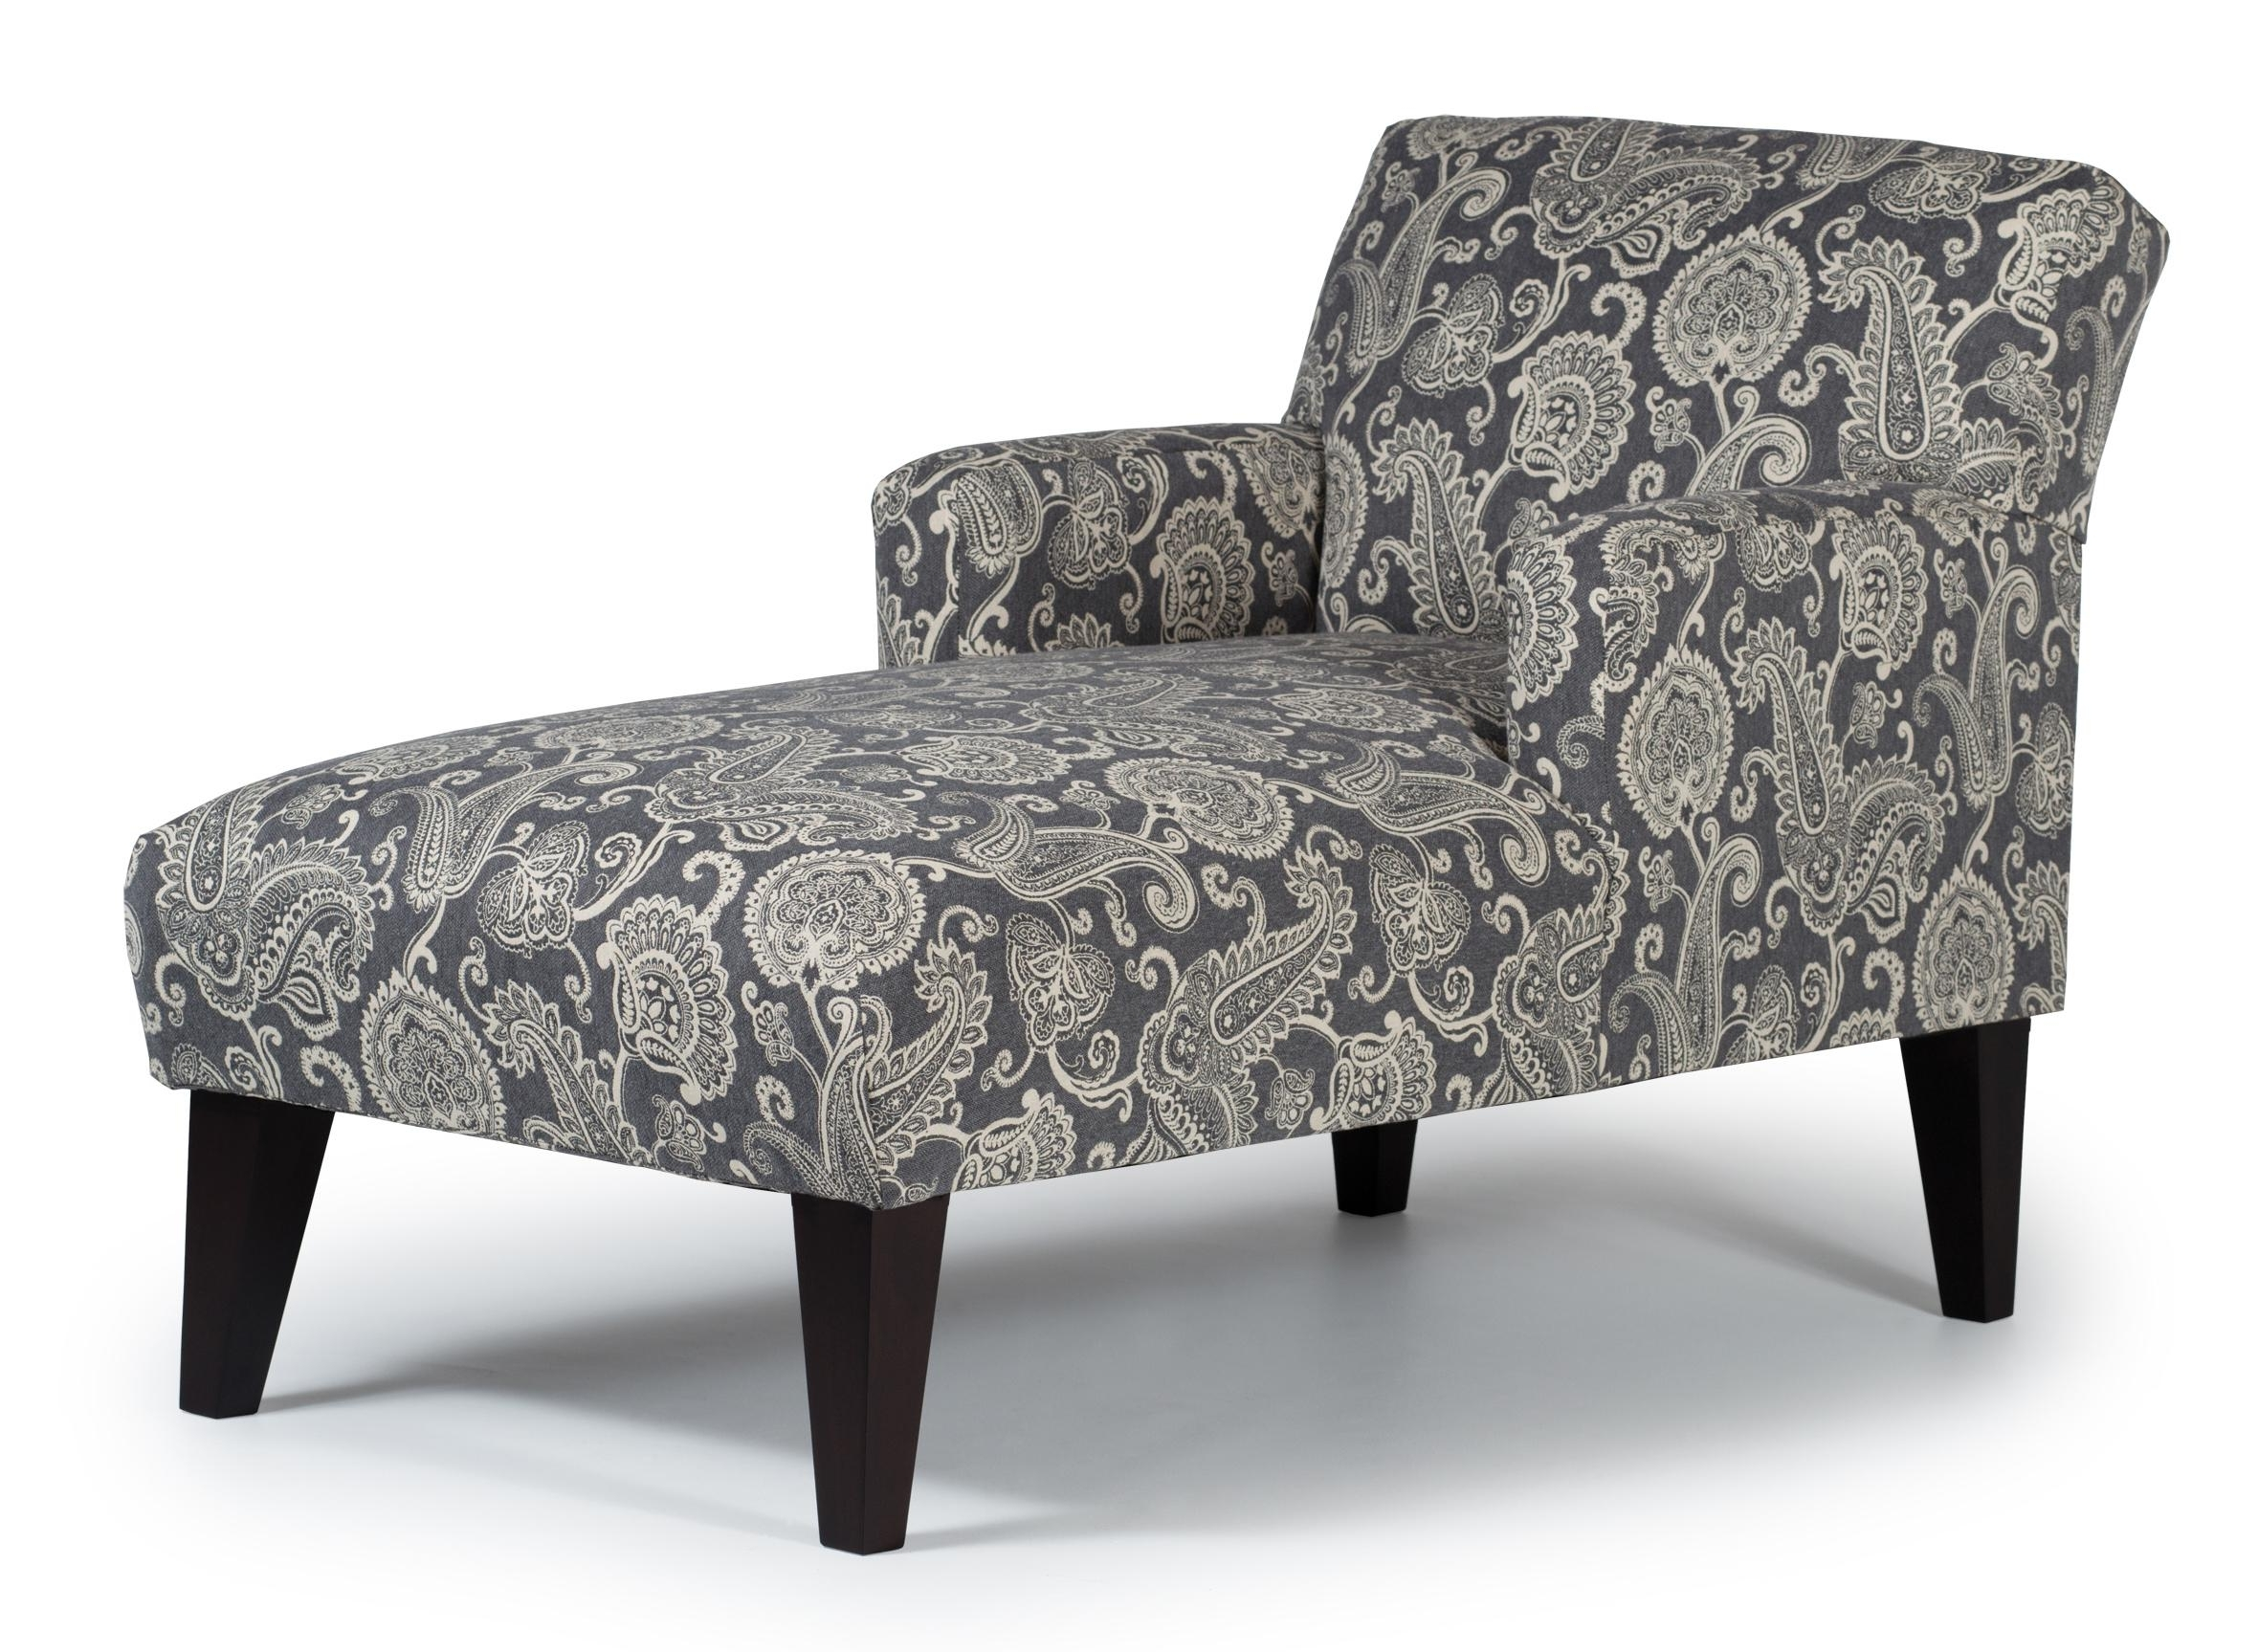 Chaise Lounge Chairs – Chaise Longue History You Might Never With Regard To Recent Modern Chaises (View 10 of 15)